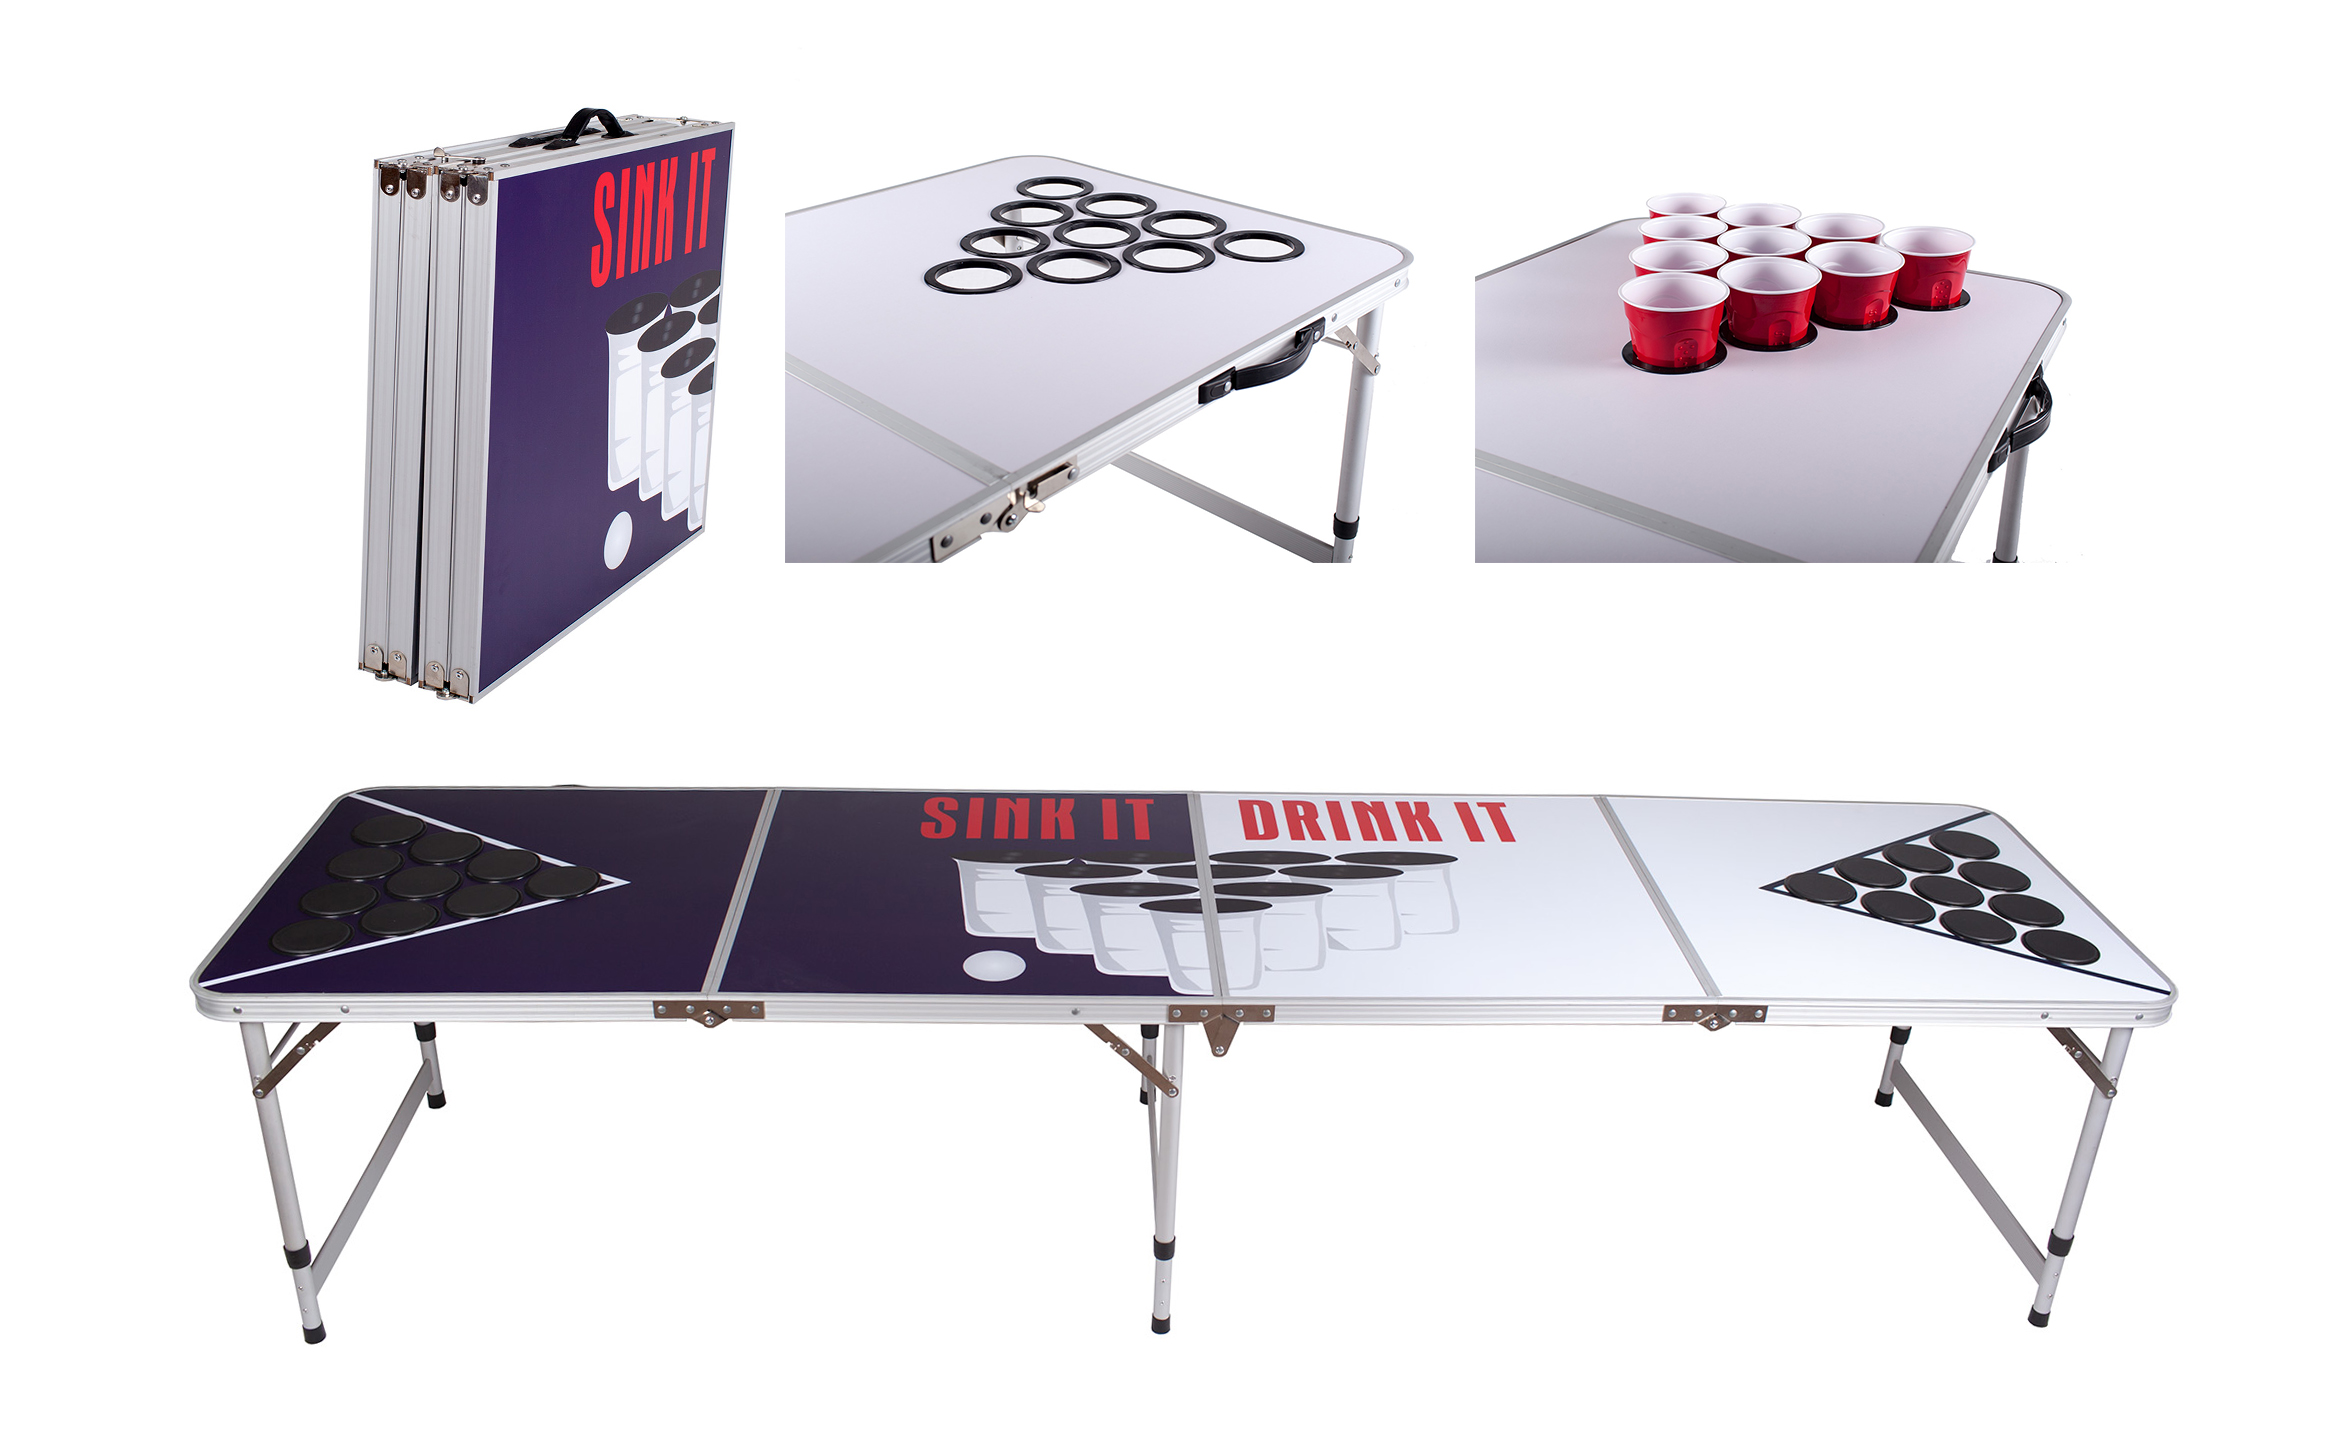 Beer Pong Table Drinking Games Fun Laugh Ice Cooler Balls Throw Cheers